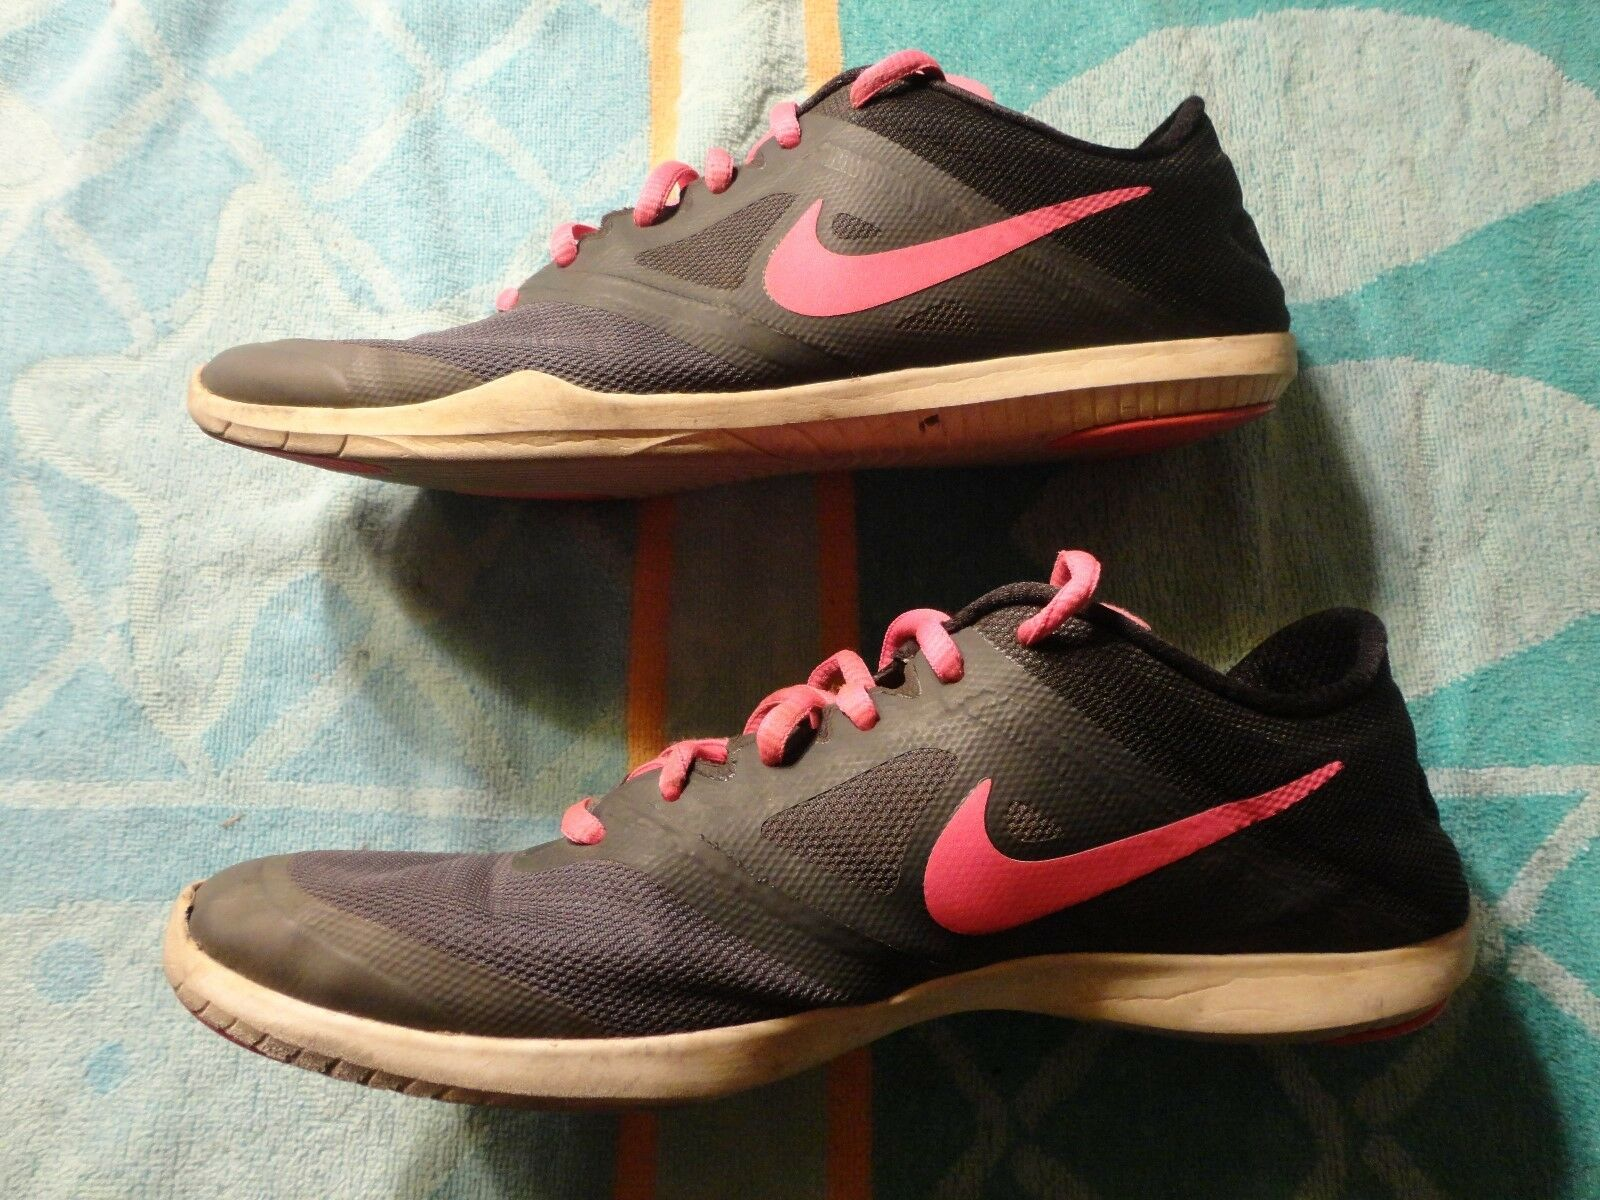 Men's/Women's Nike SHOES WOMENS SIZE 8 in 1/2 Queensland First grade in 8 its class Rich on-time delivery d34d75